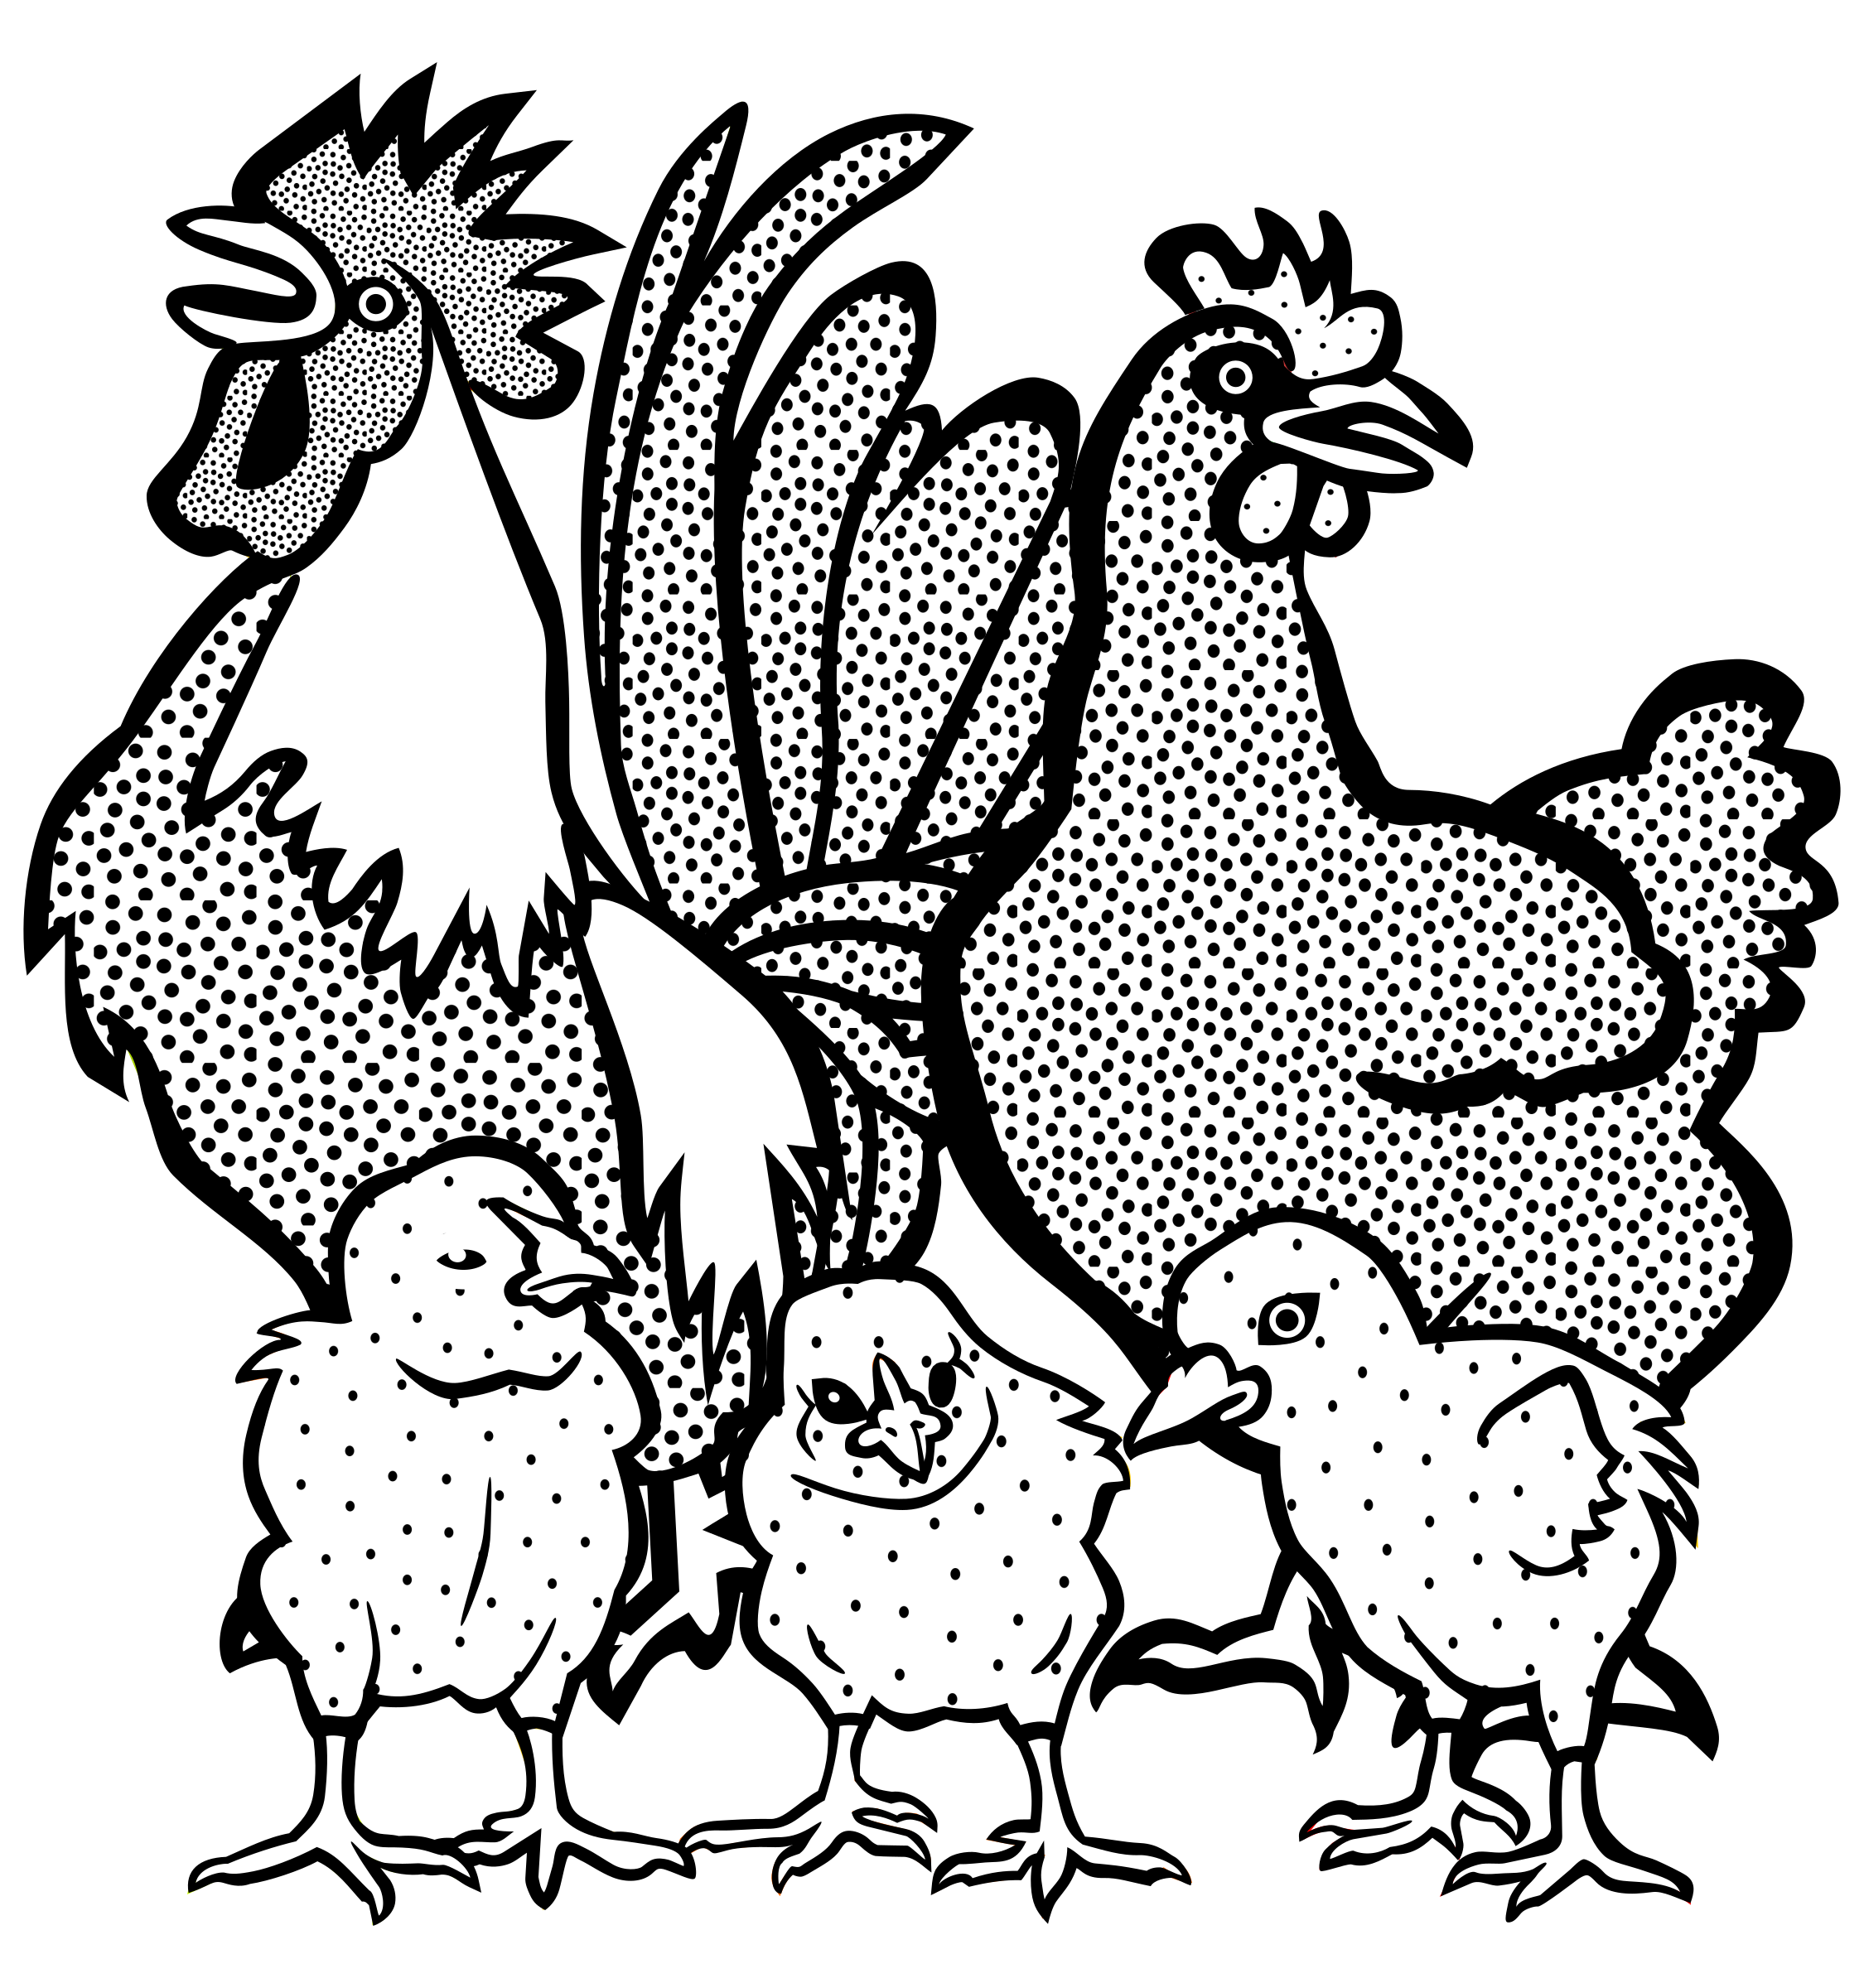 chickens - lineart by frankes